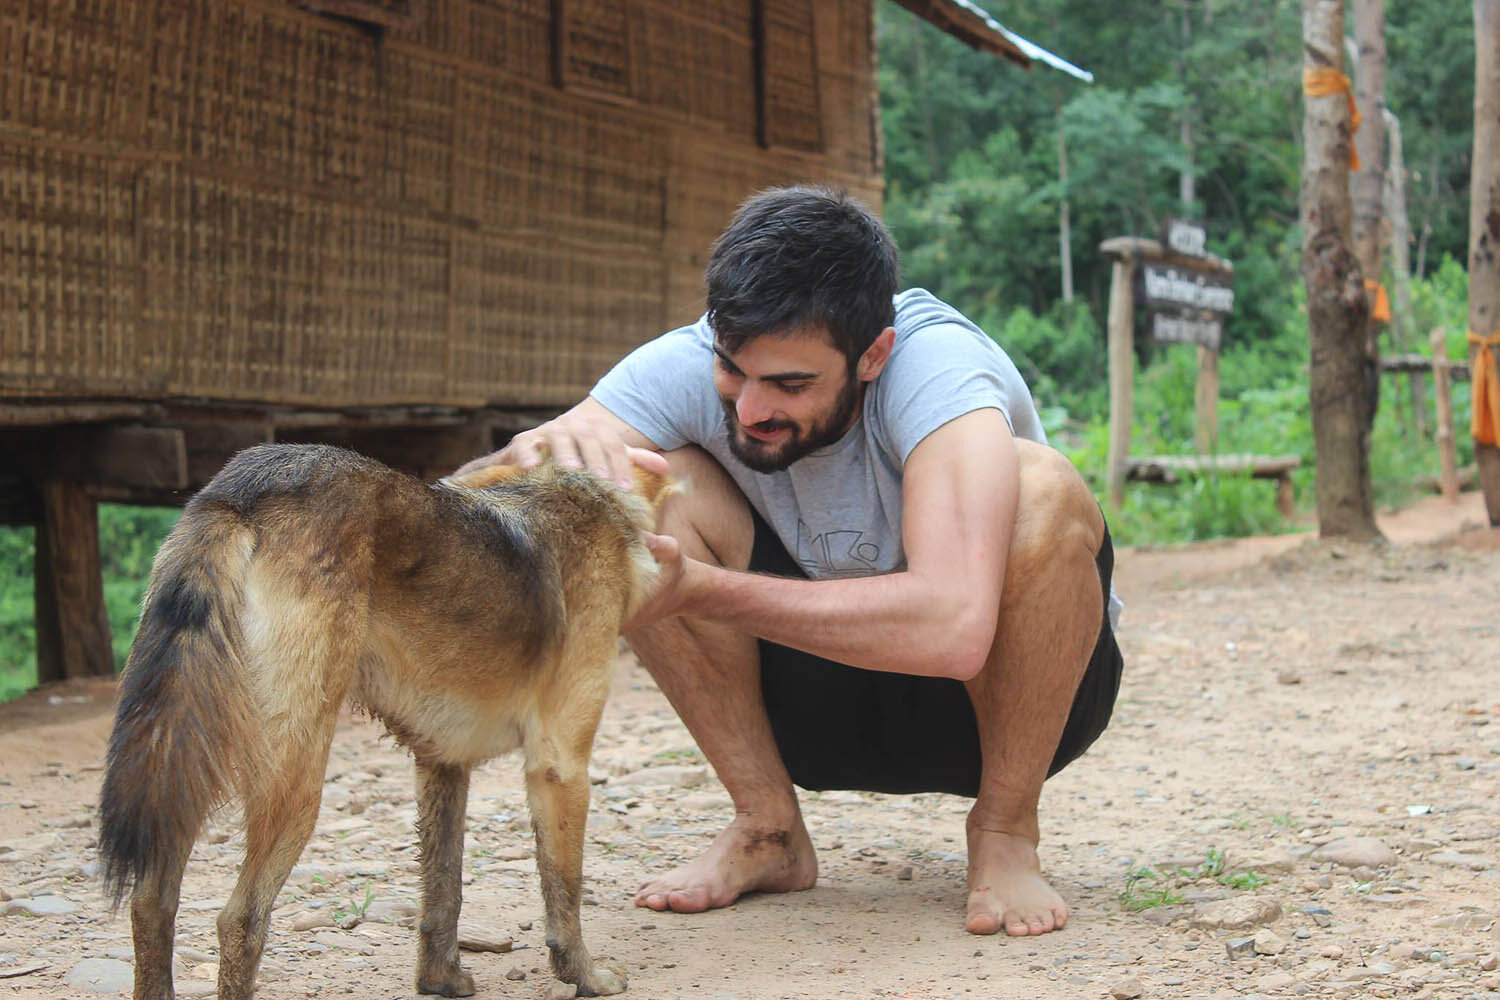 Petting stray dogs carries risks in rural Thailand. Image:  Mbalimbali